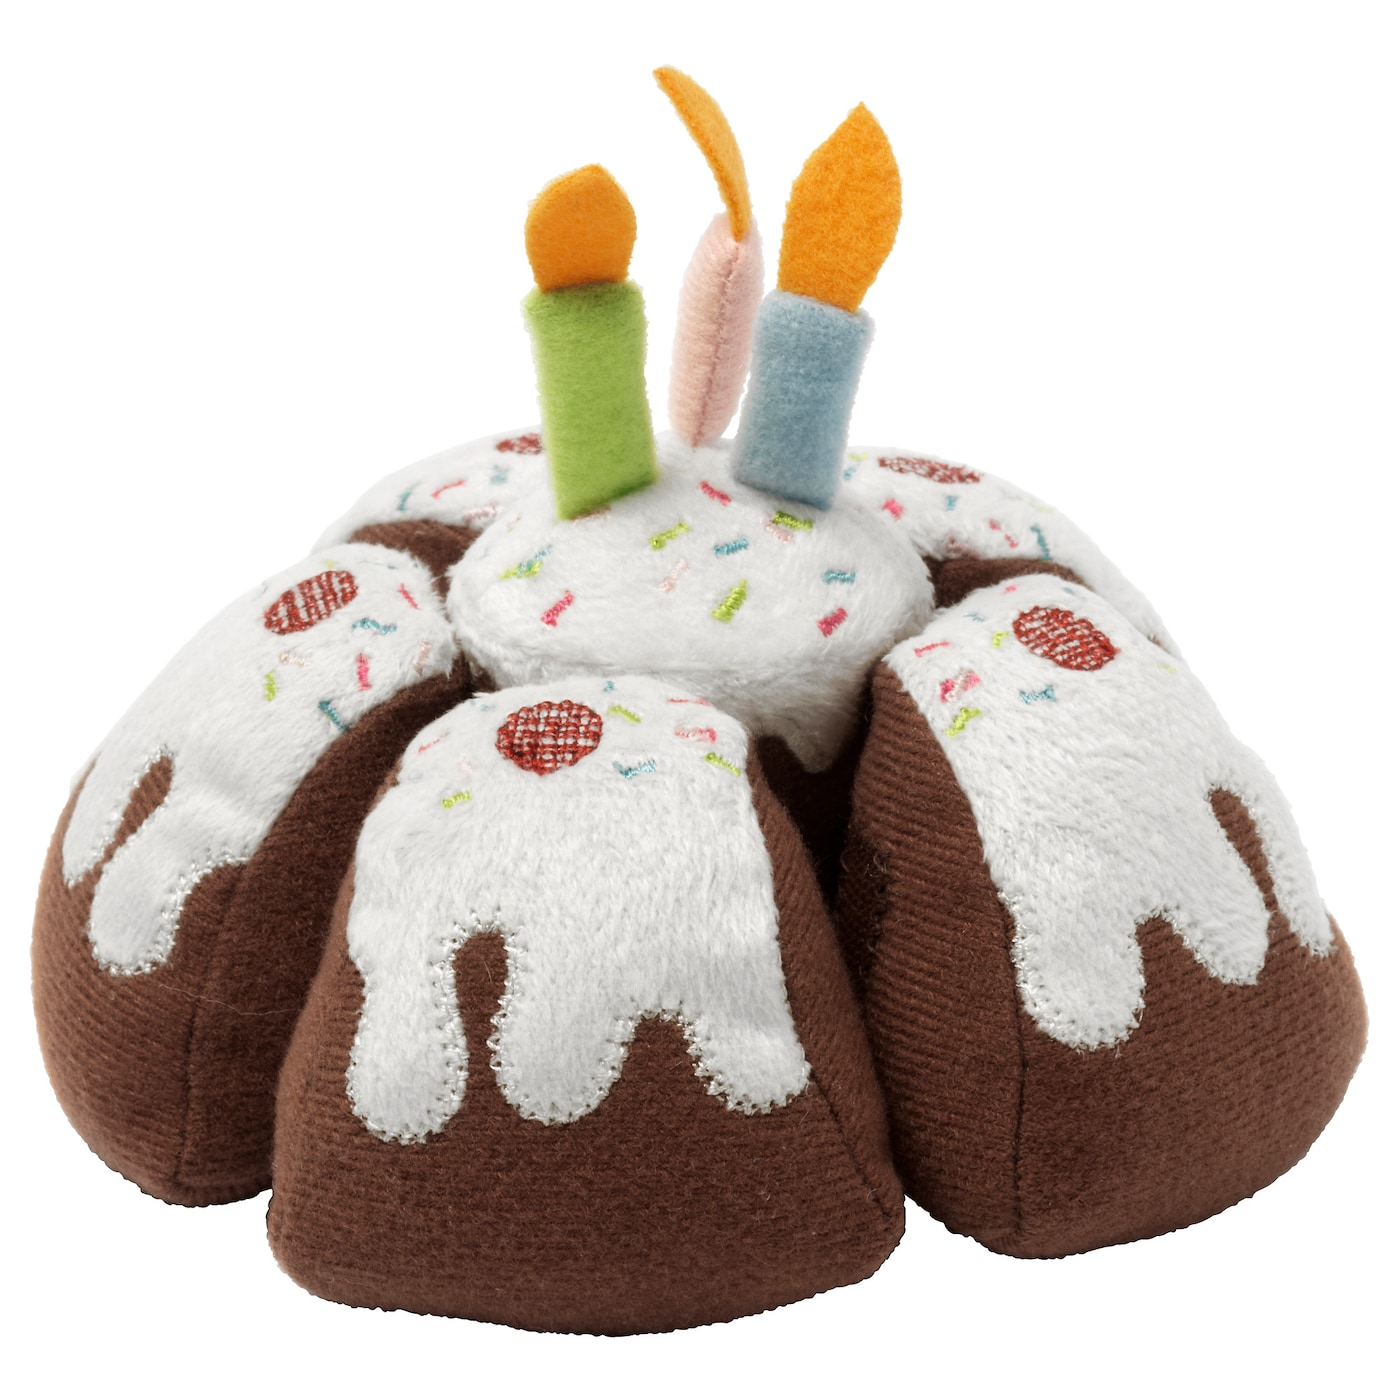 IKEA DUKTIG soft toy Helps the child develop fine motor skills and hand/eye co-ordination.